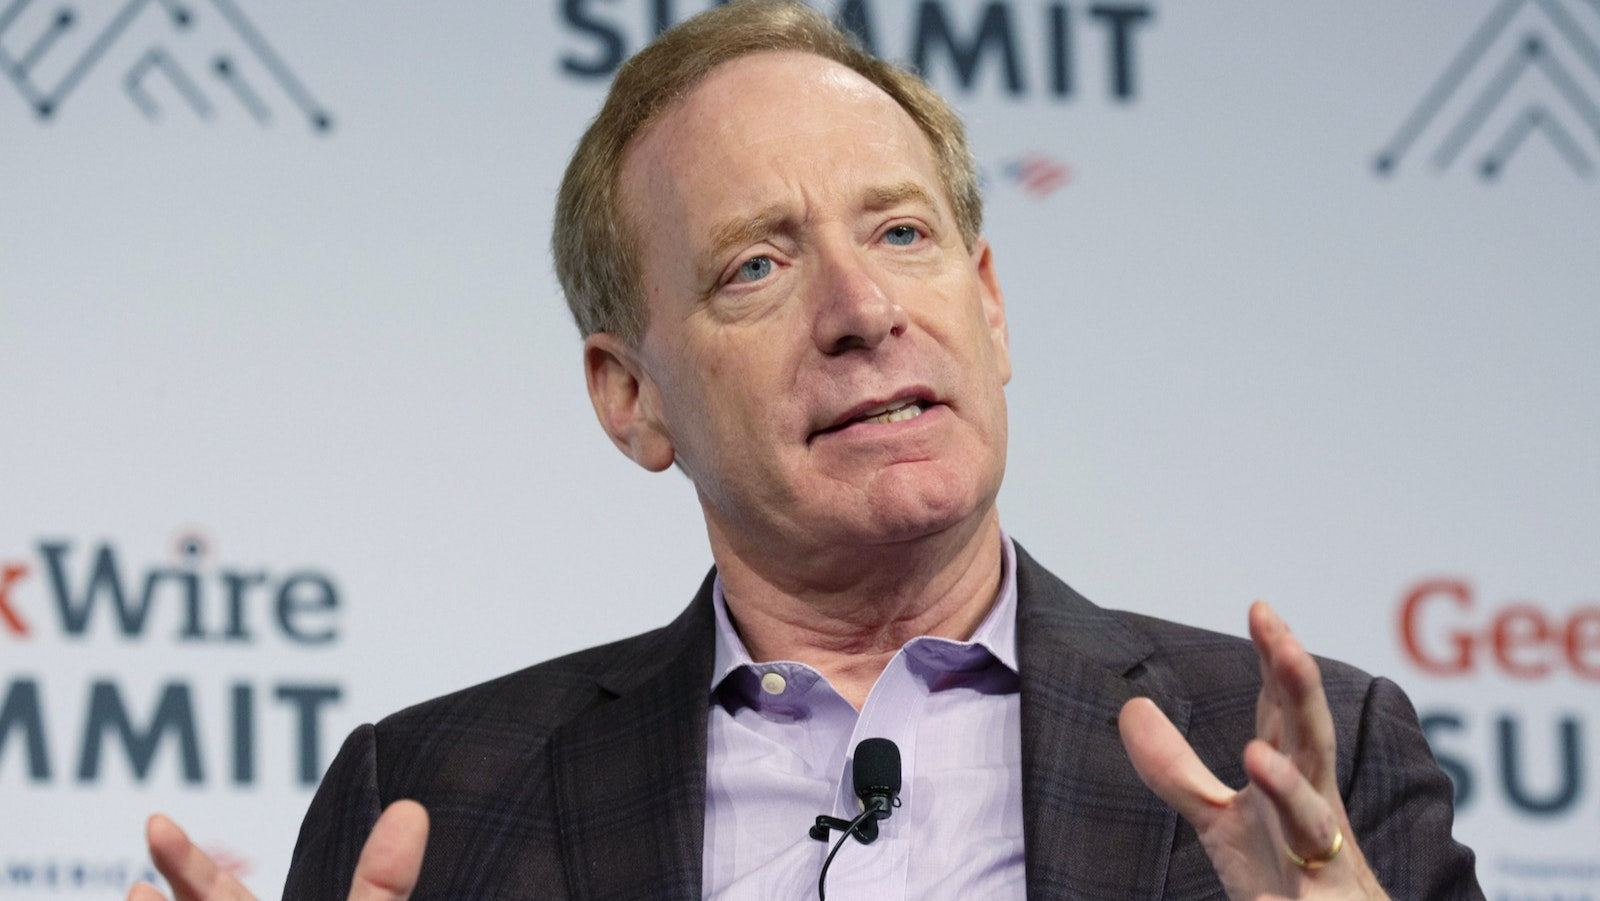 Microsoft President Brad Smith. Photo by Bloomberg